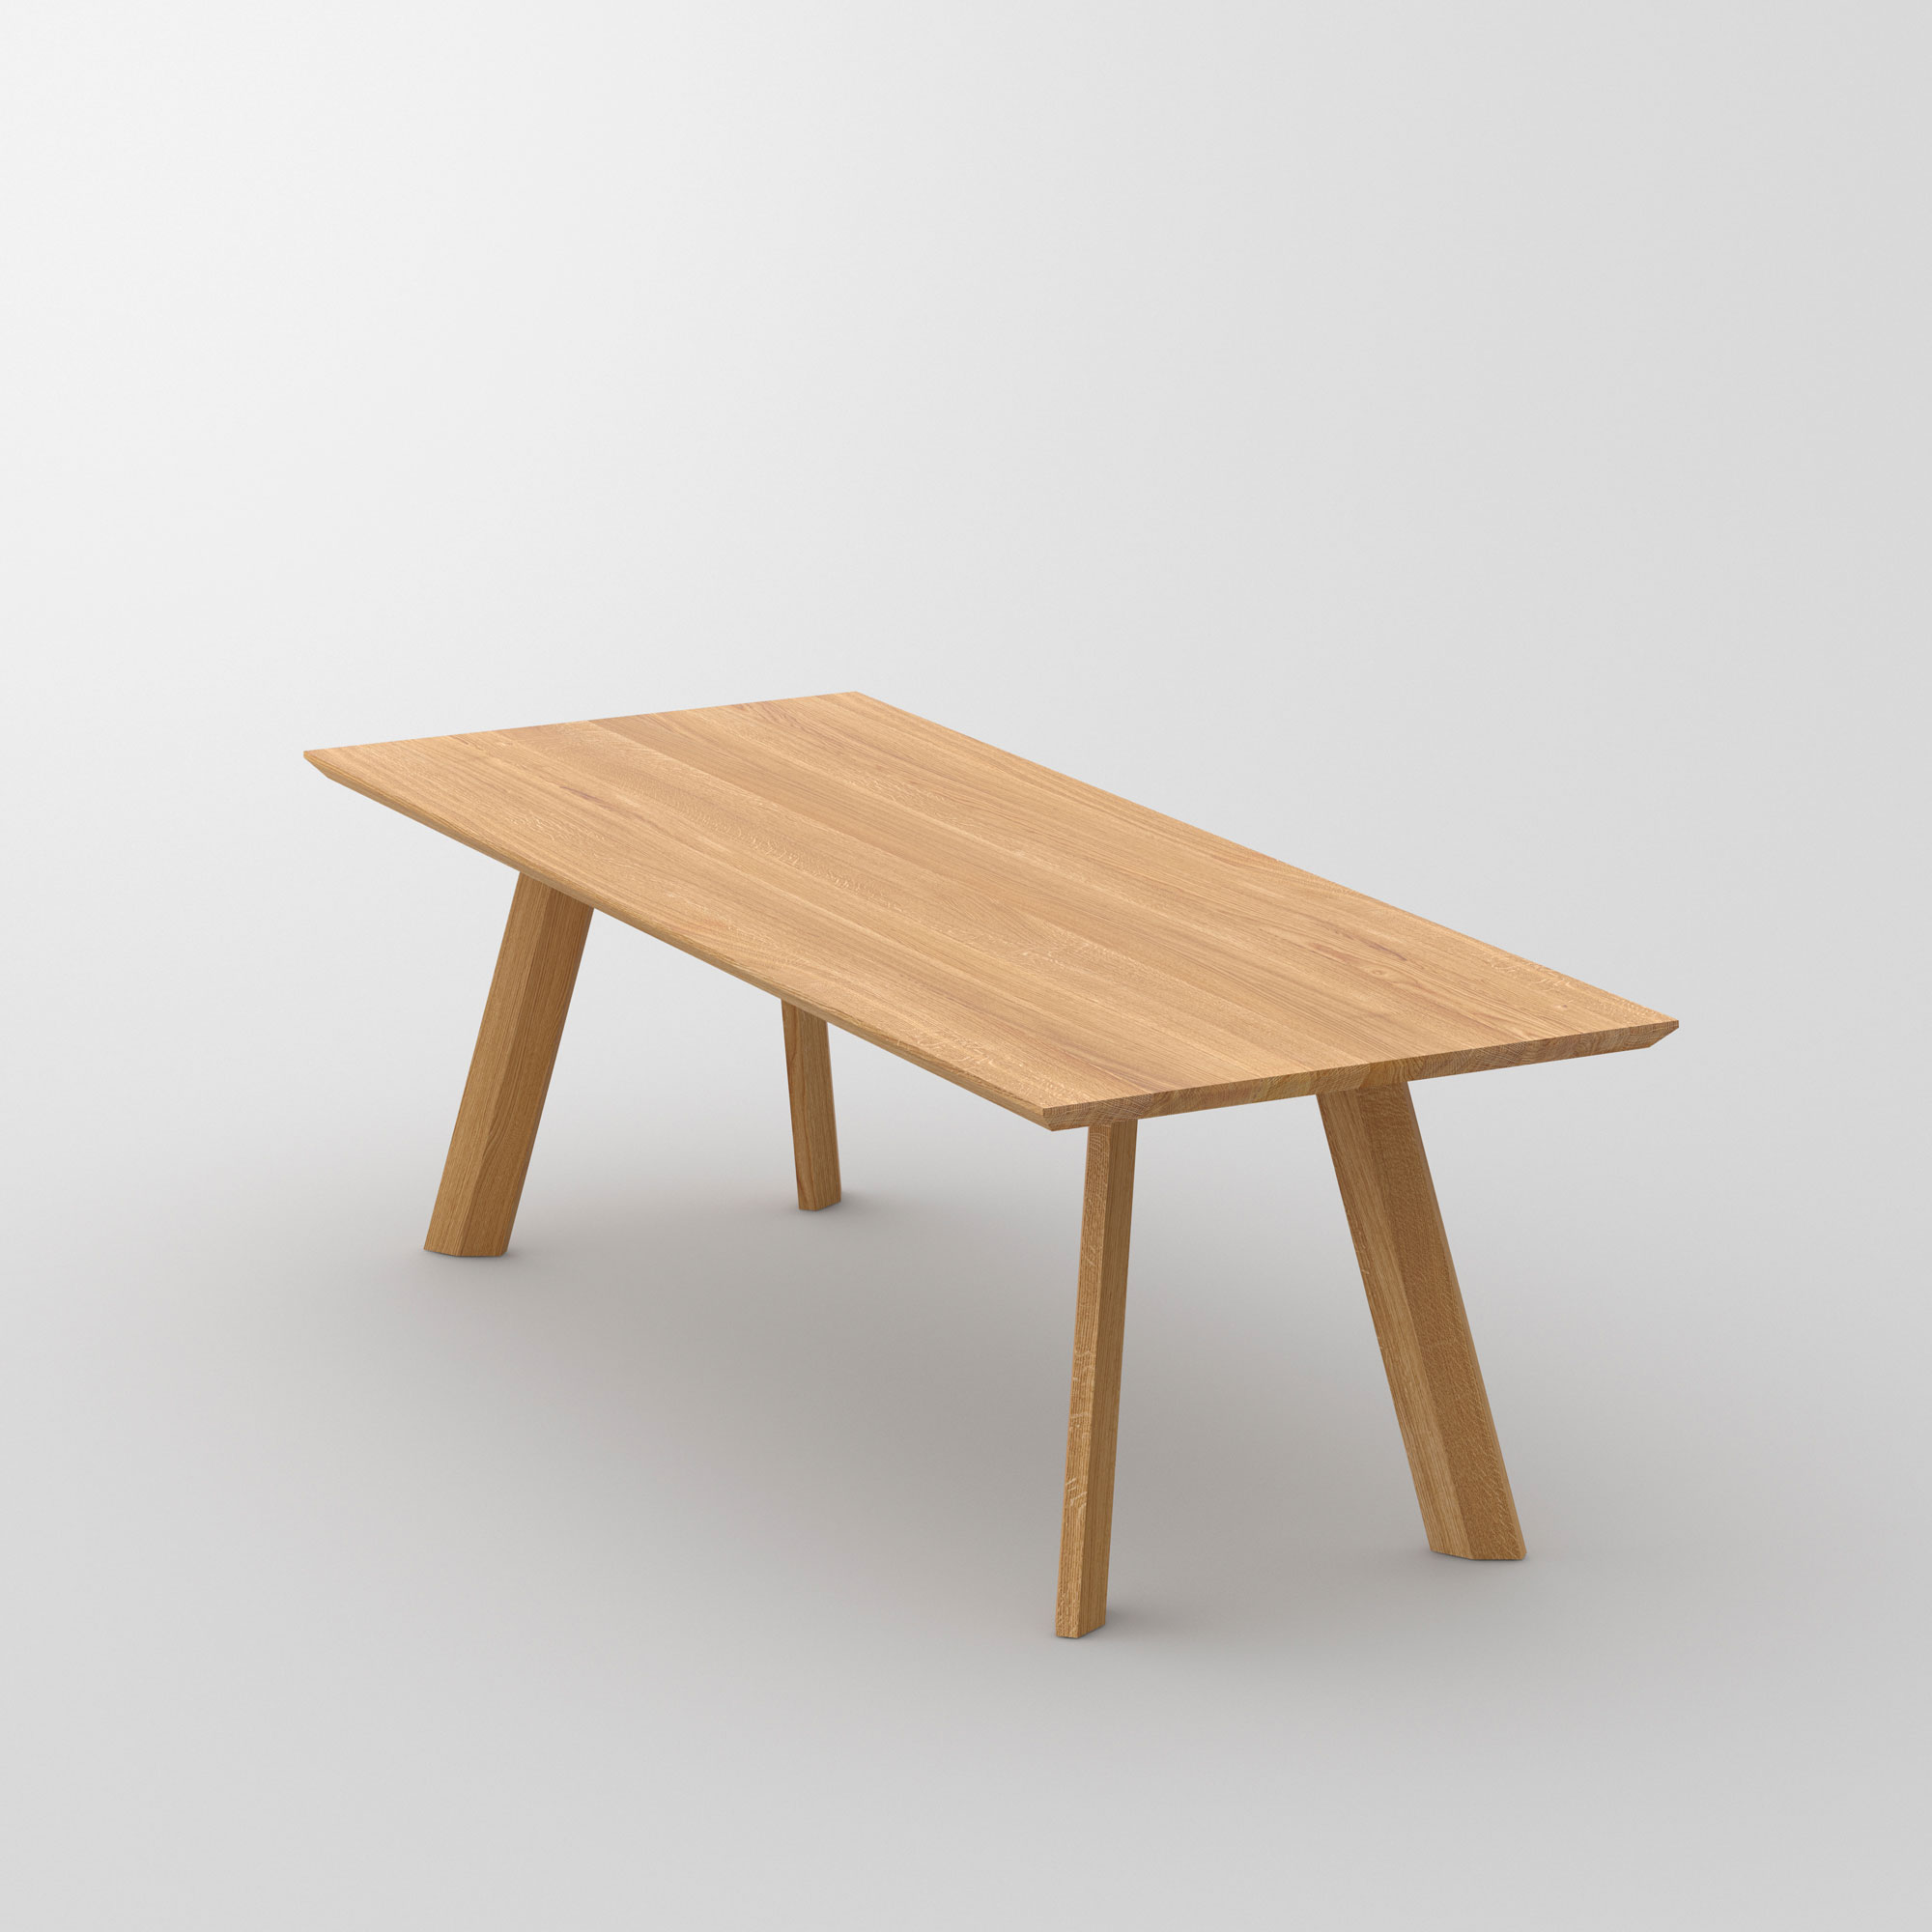 Designer Living Room Table RHOMBI BASIC cam2 custom made in solid wood by vitamin design